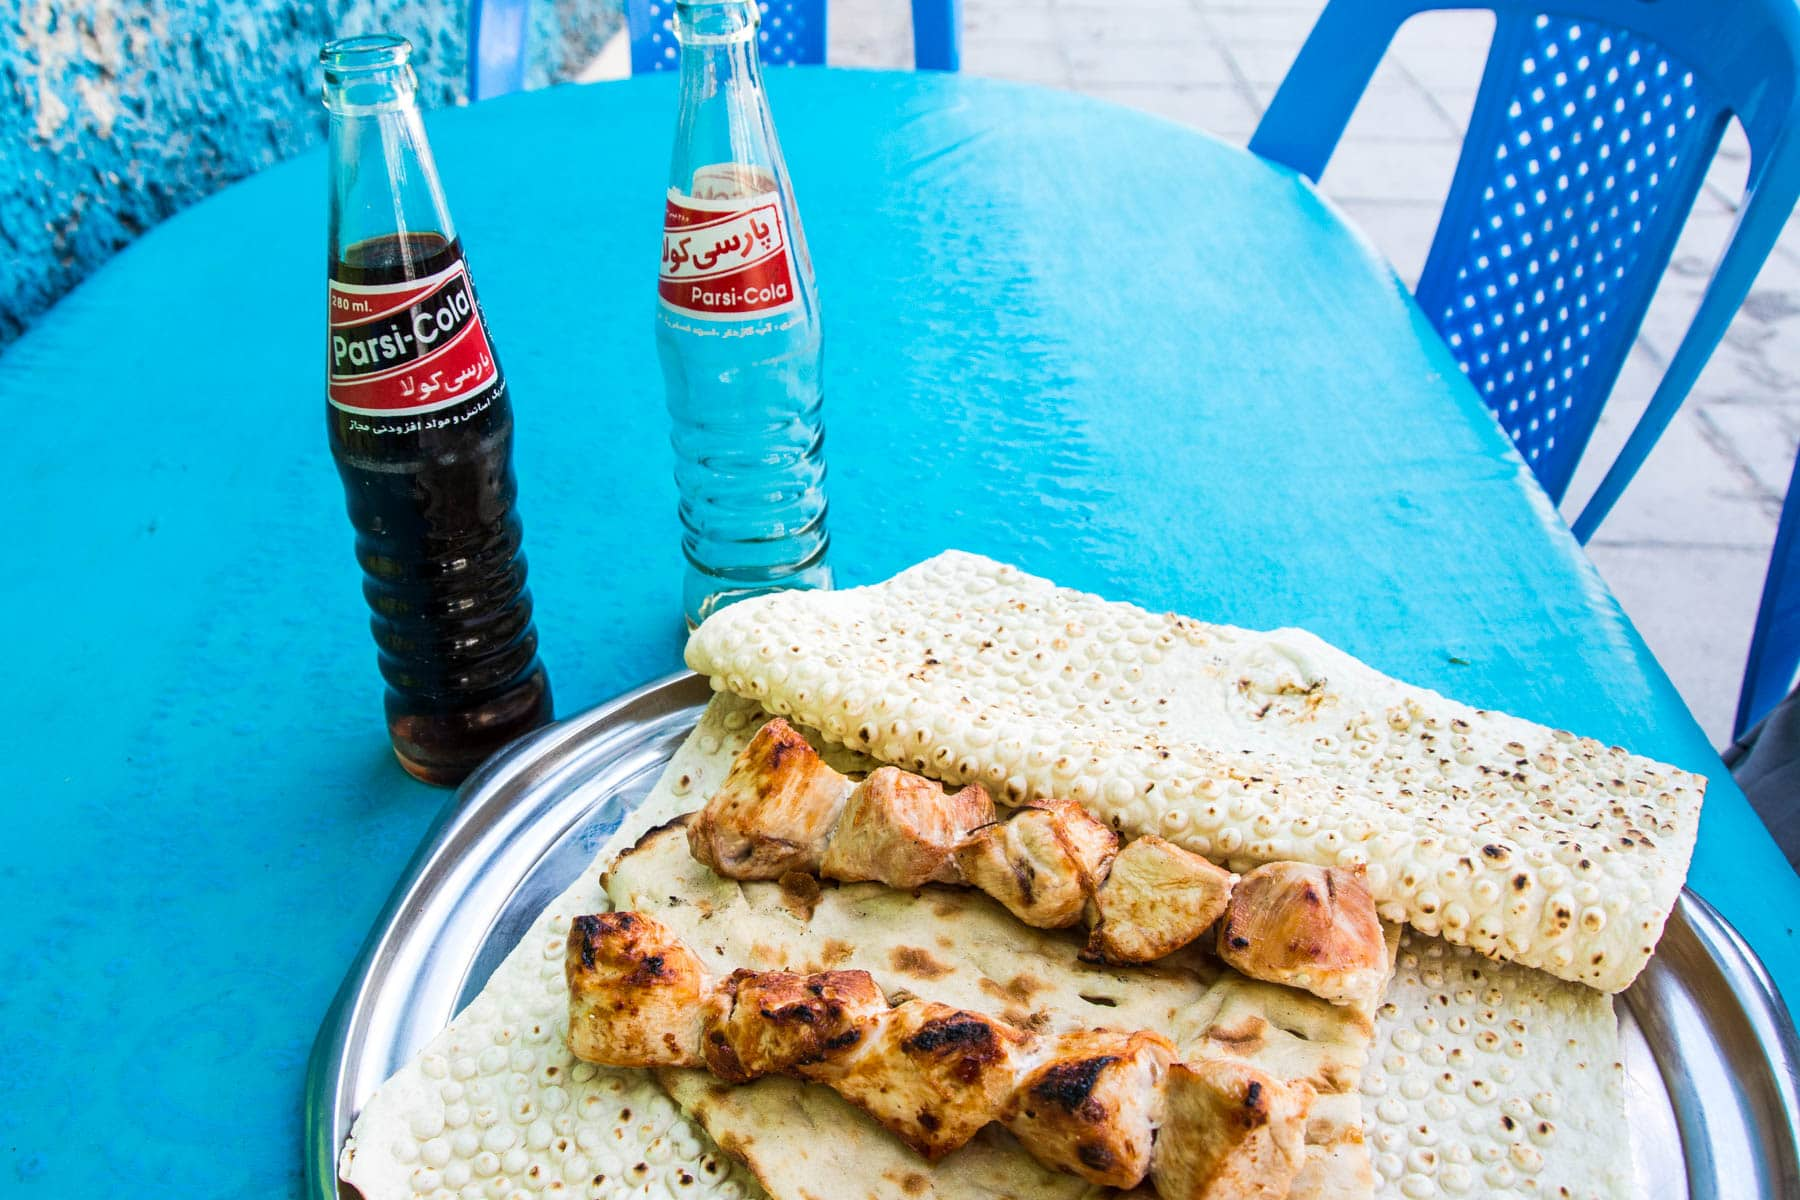 Things to know before traveling to Iran: KEBAB